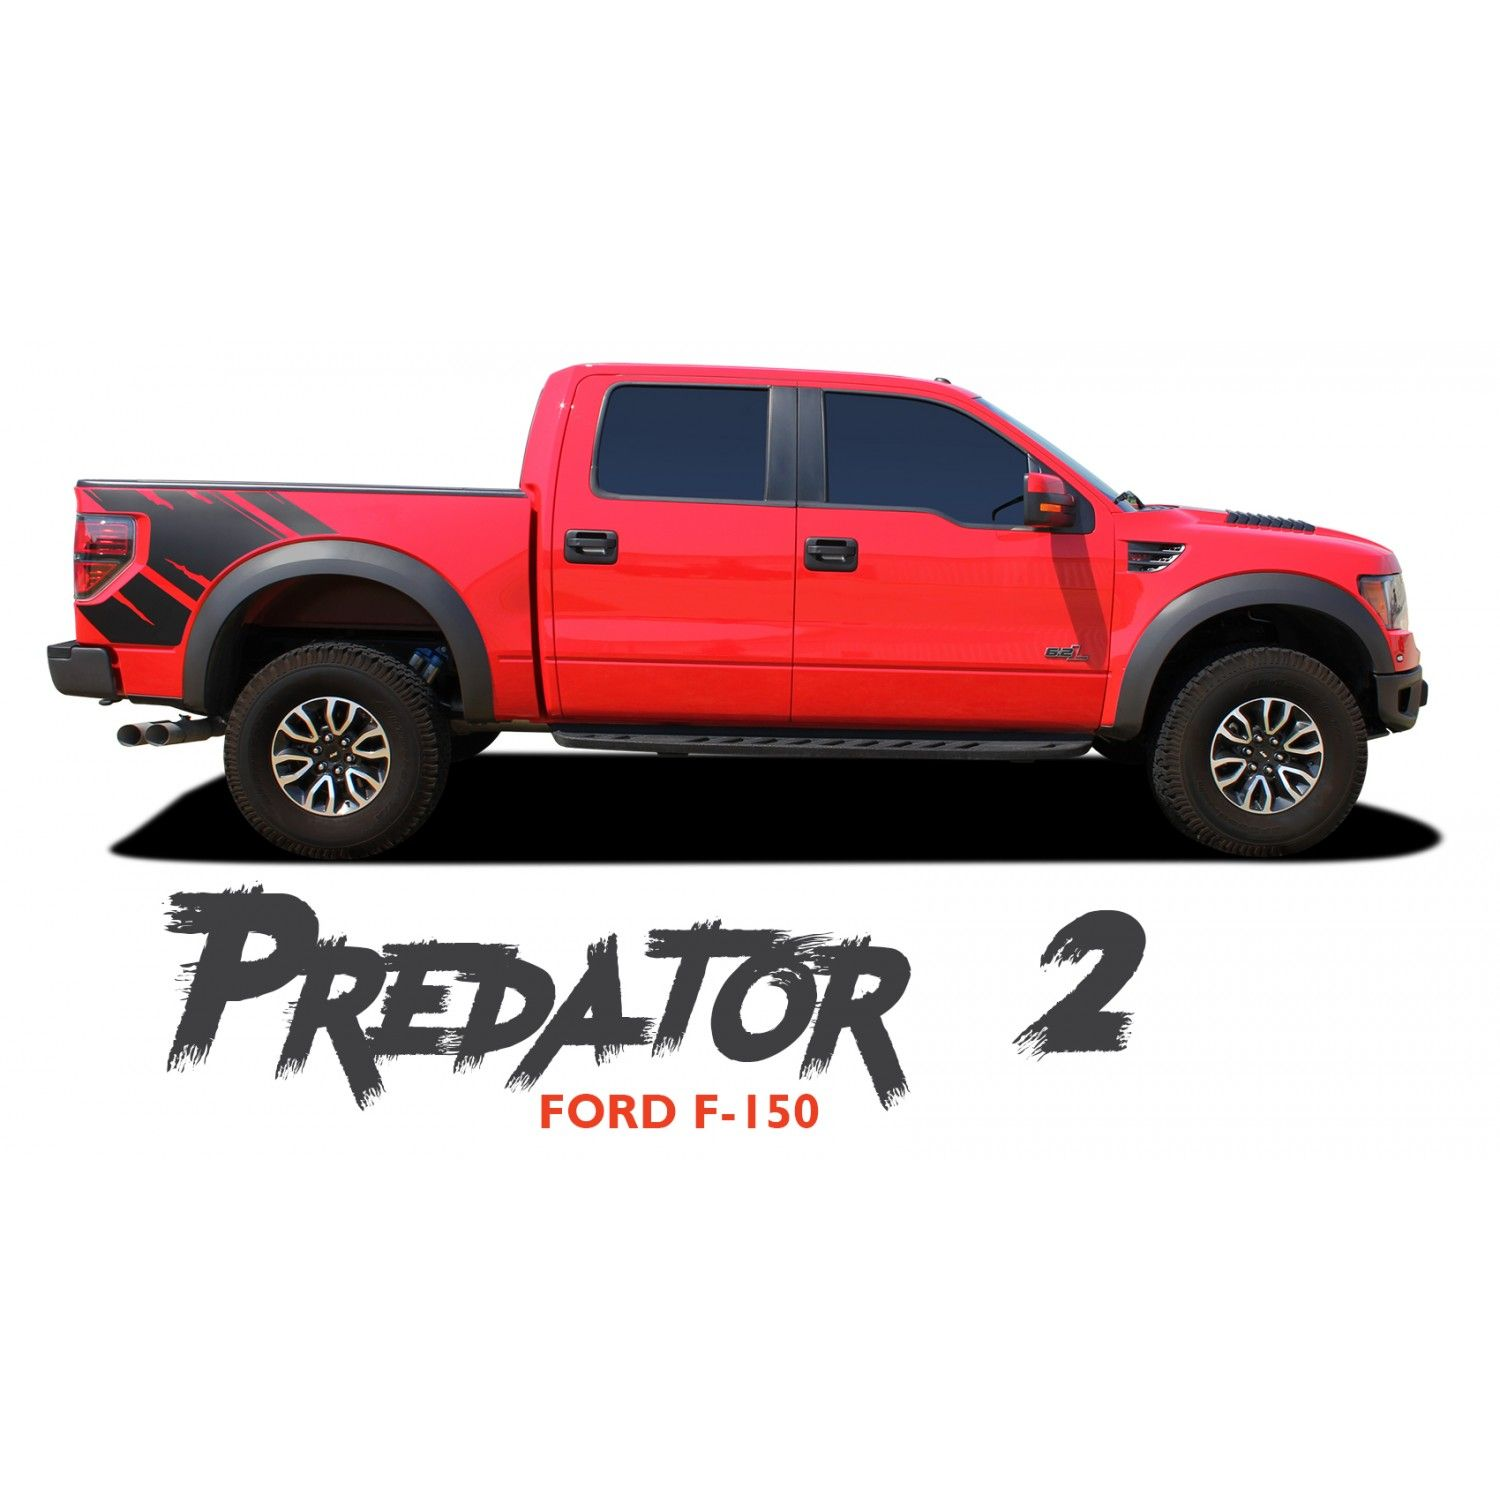 Ford F 150 Predator 2 F Series Raptor Mudslinger Side Truck Bed Vinyl Graphics Decals Striping Kit 2009 2010 2011 2 Ford F150 Vinyl Graphics Car Vinyl Graphics